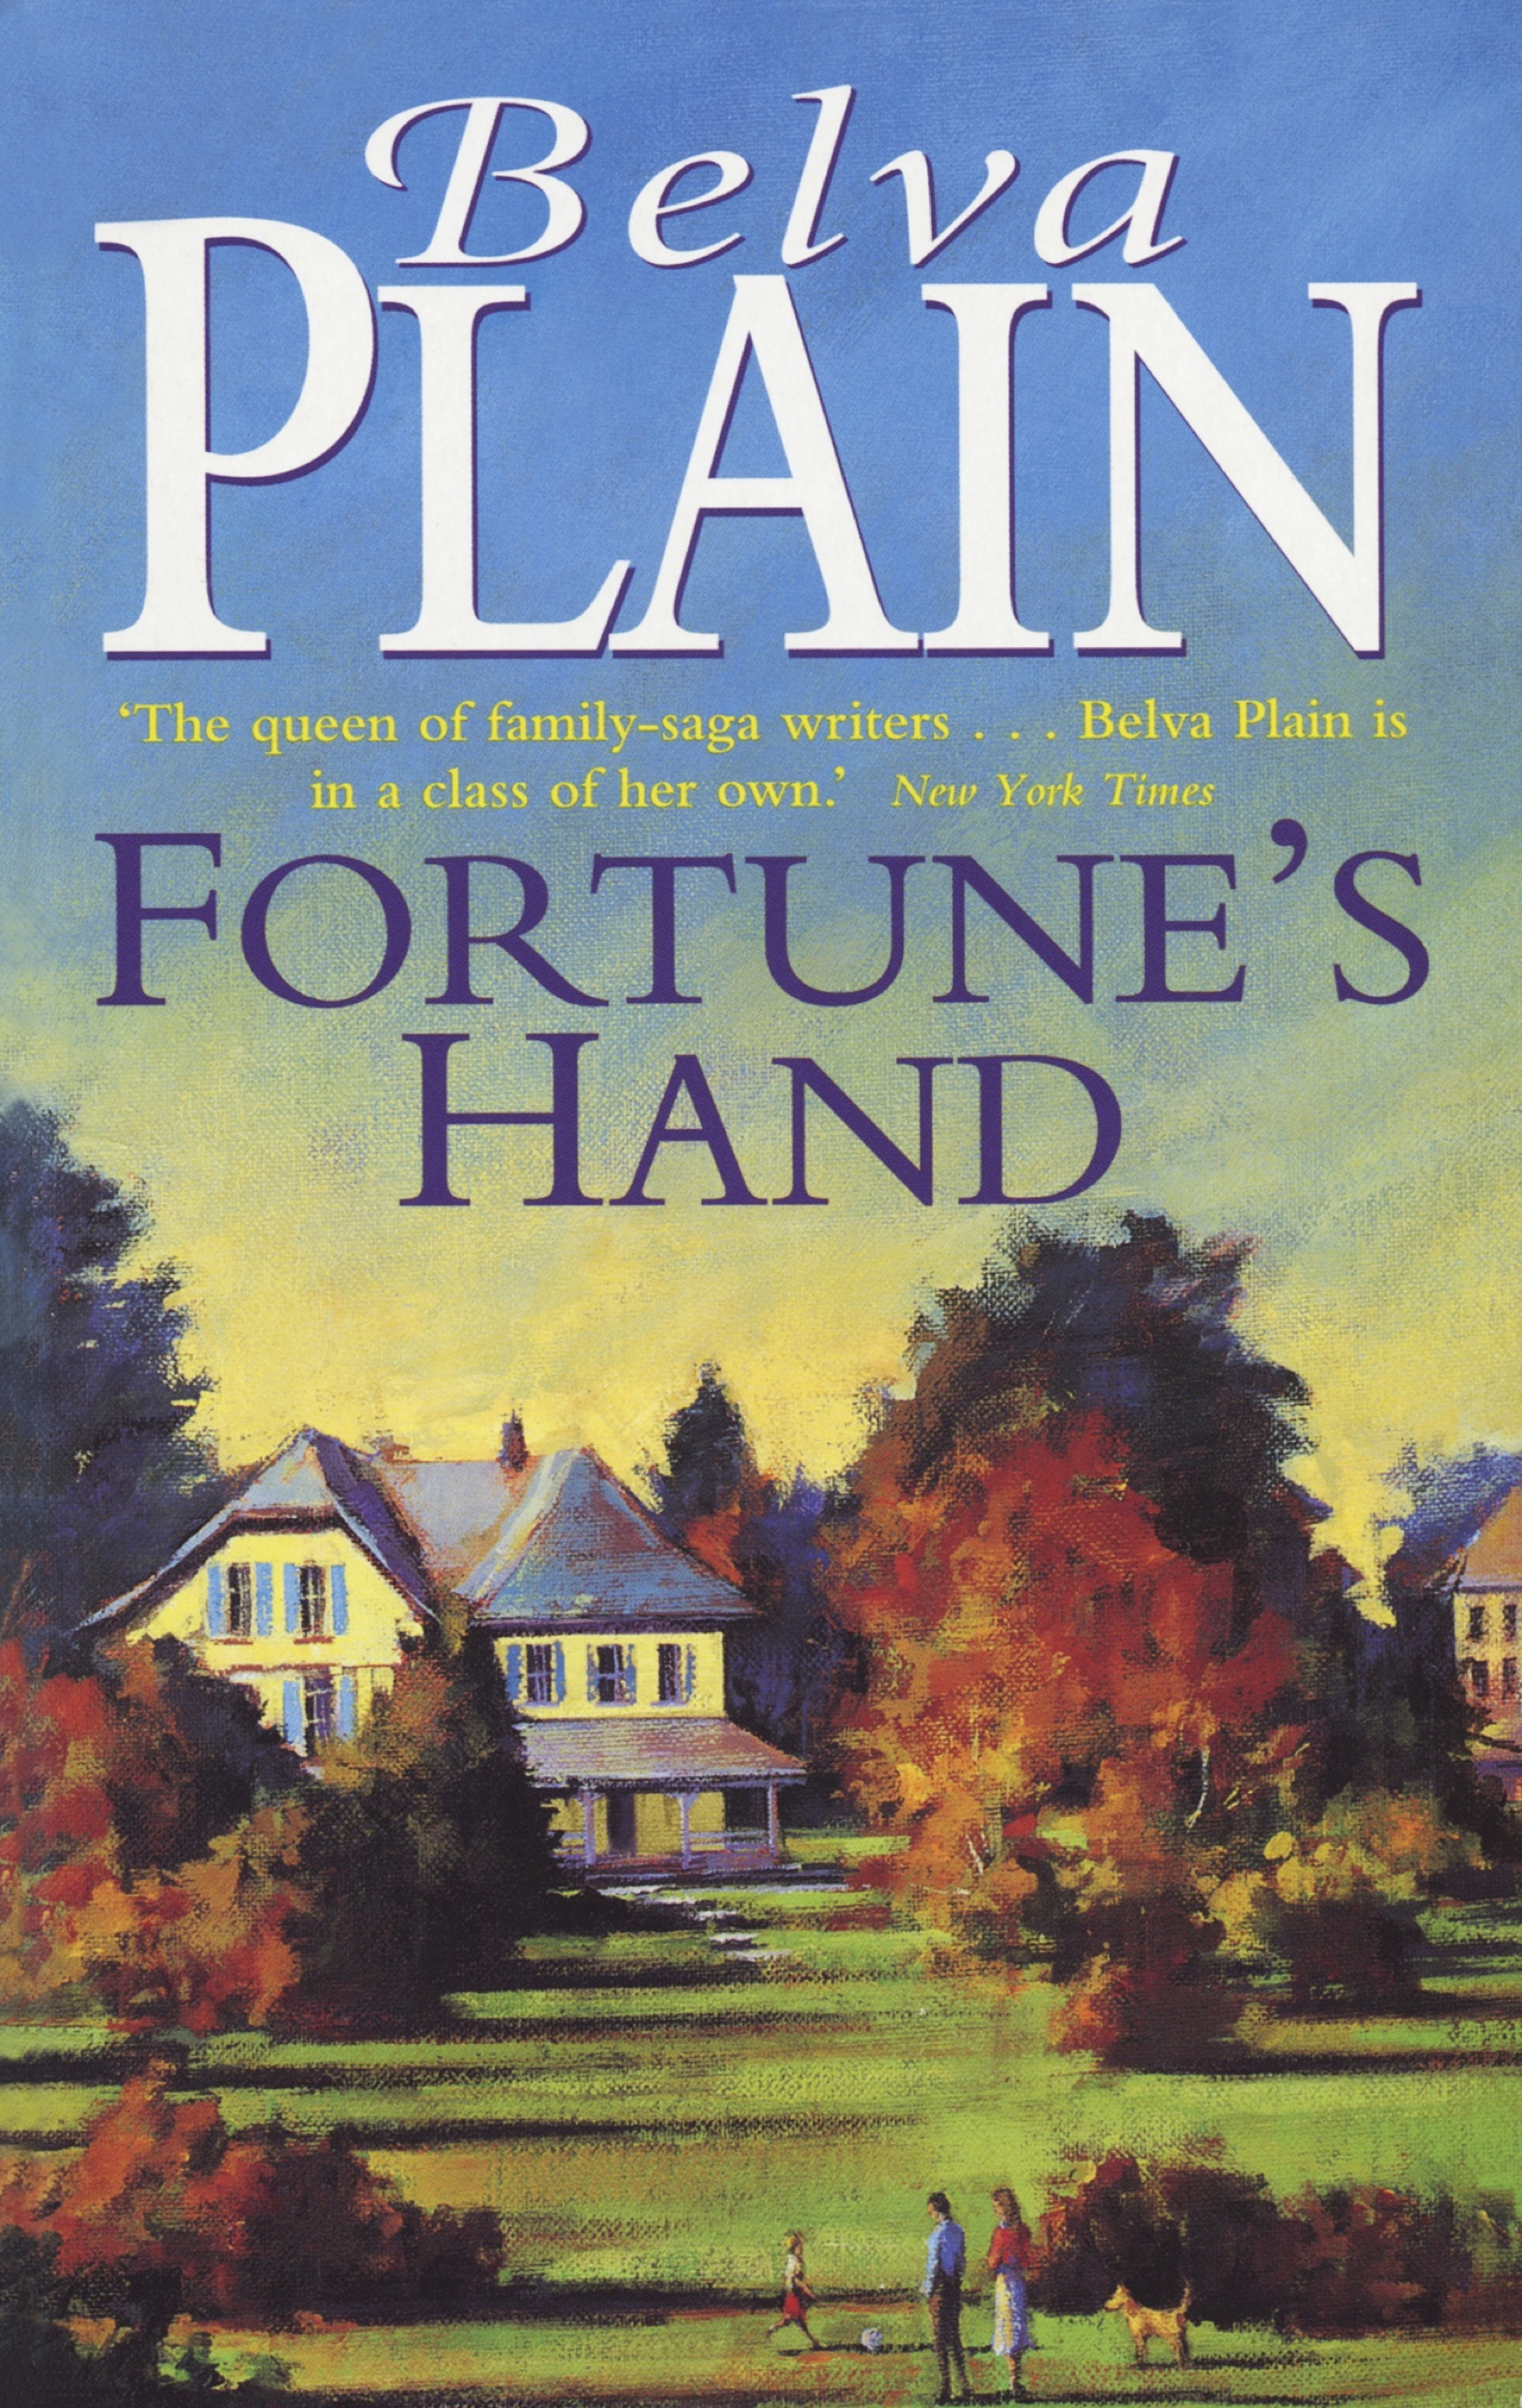 Fortune's Hand